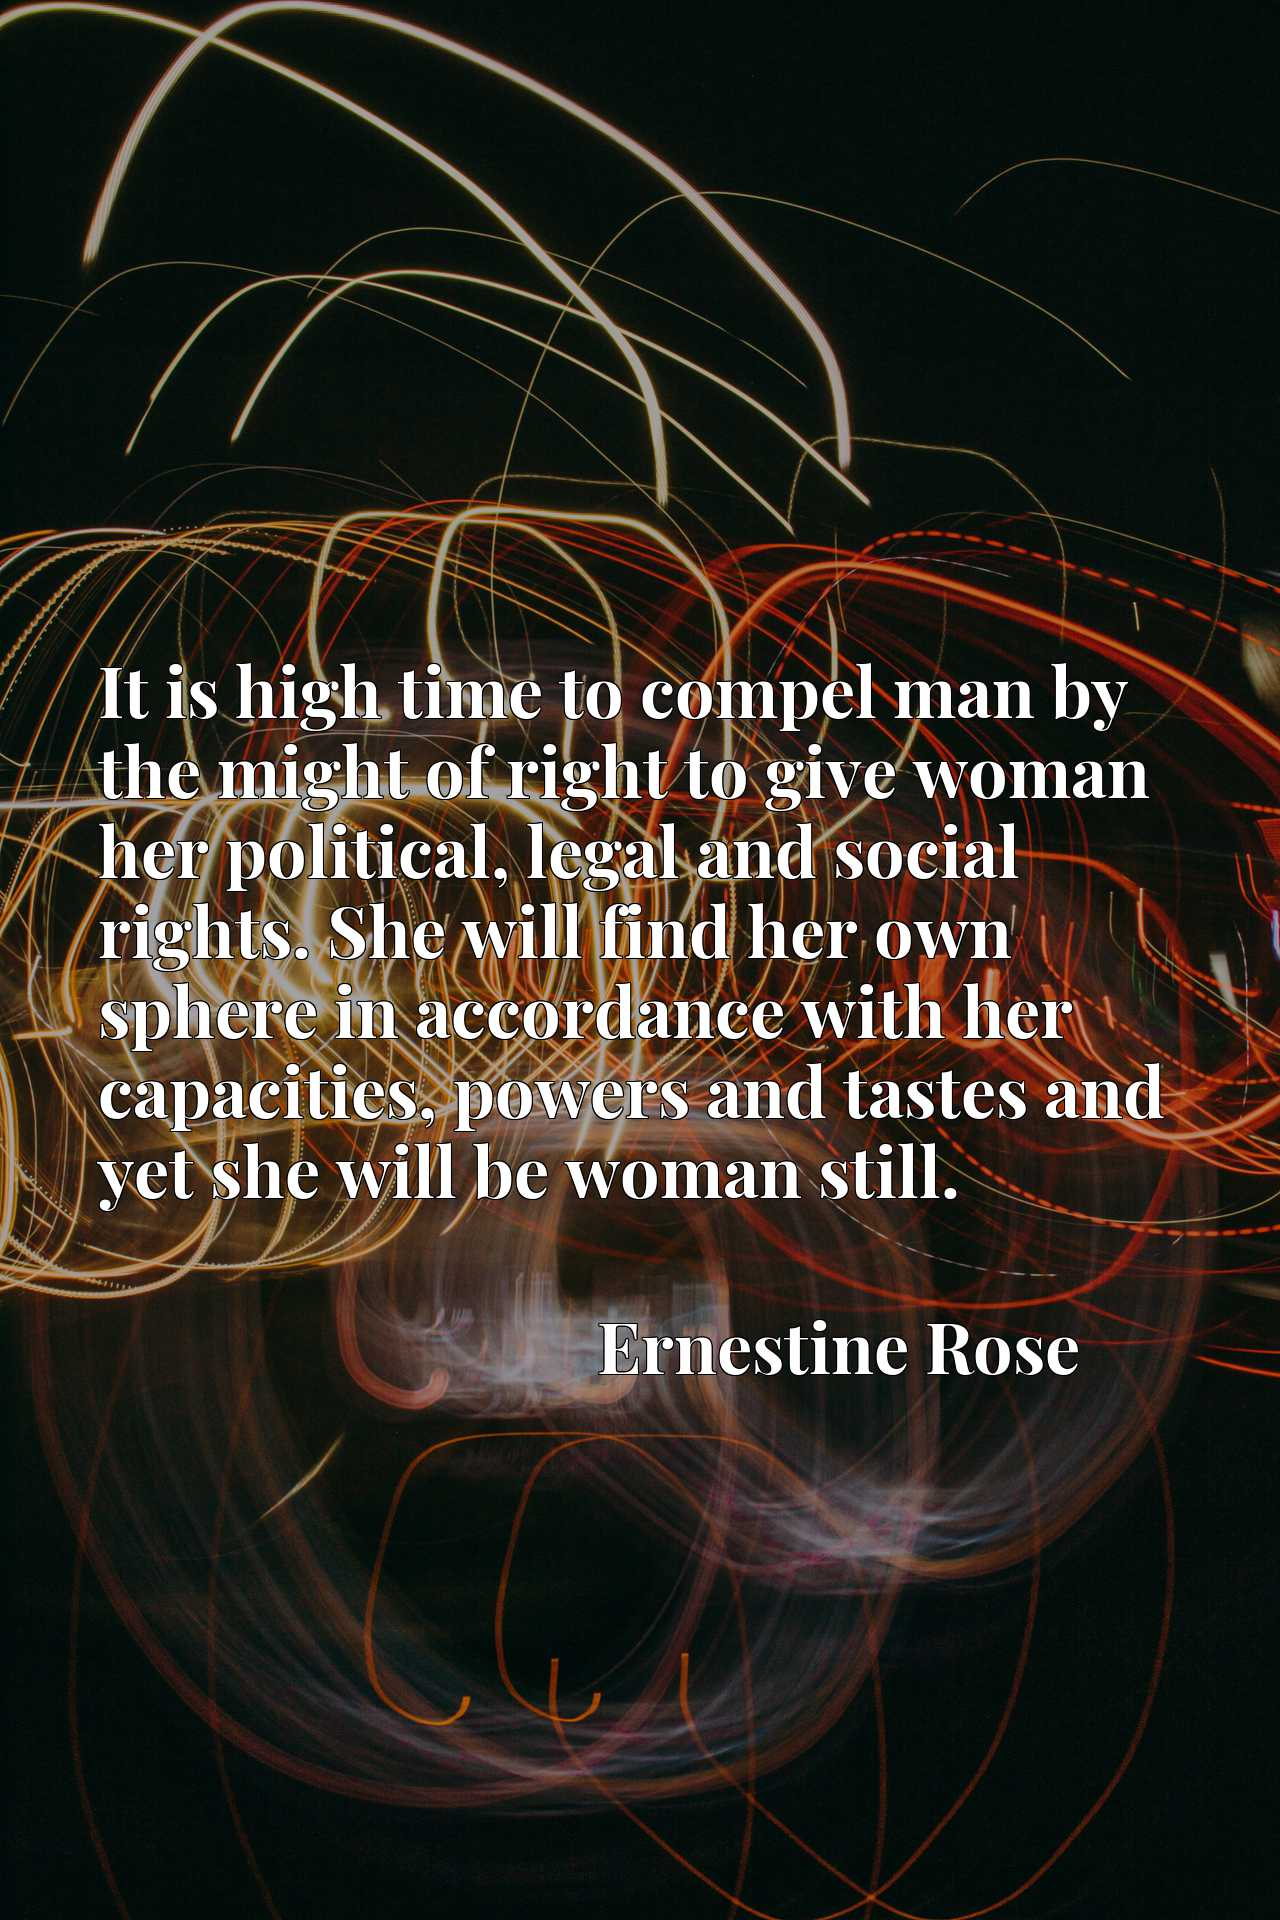 It is high time to compel man by the might of right to give woman her political, legal and social rights. She will find her own sphere in accordance with her capacities, powers and tastes and yet she will be woman still.